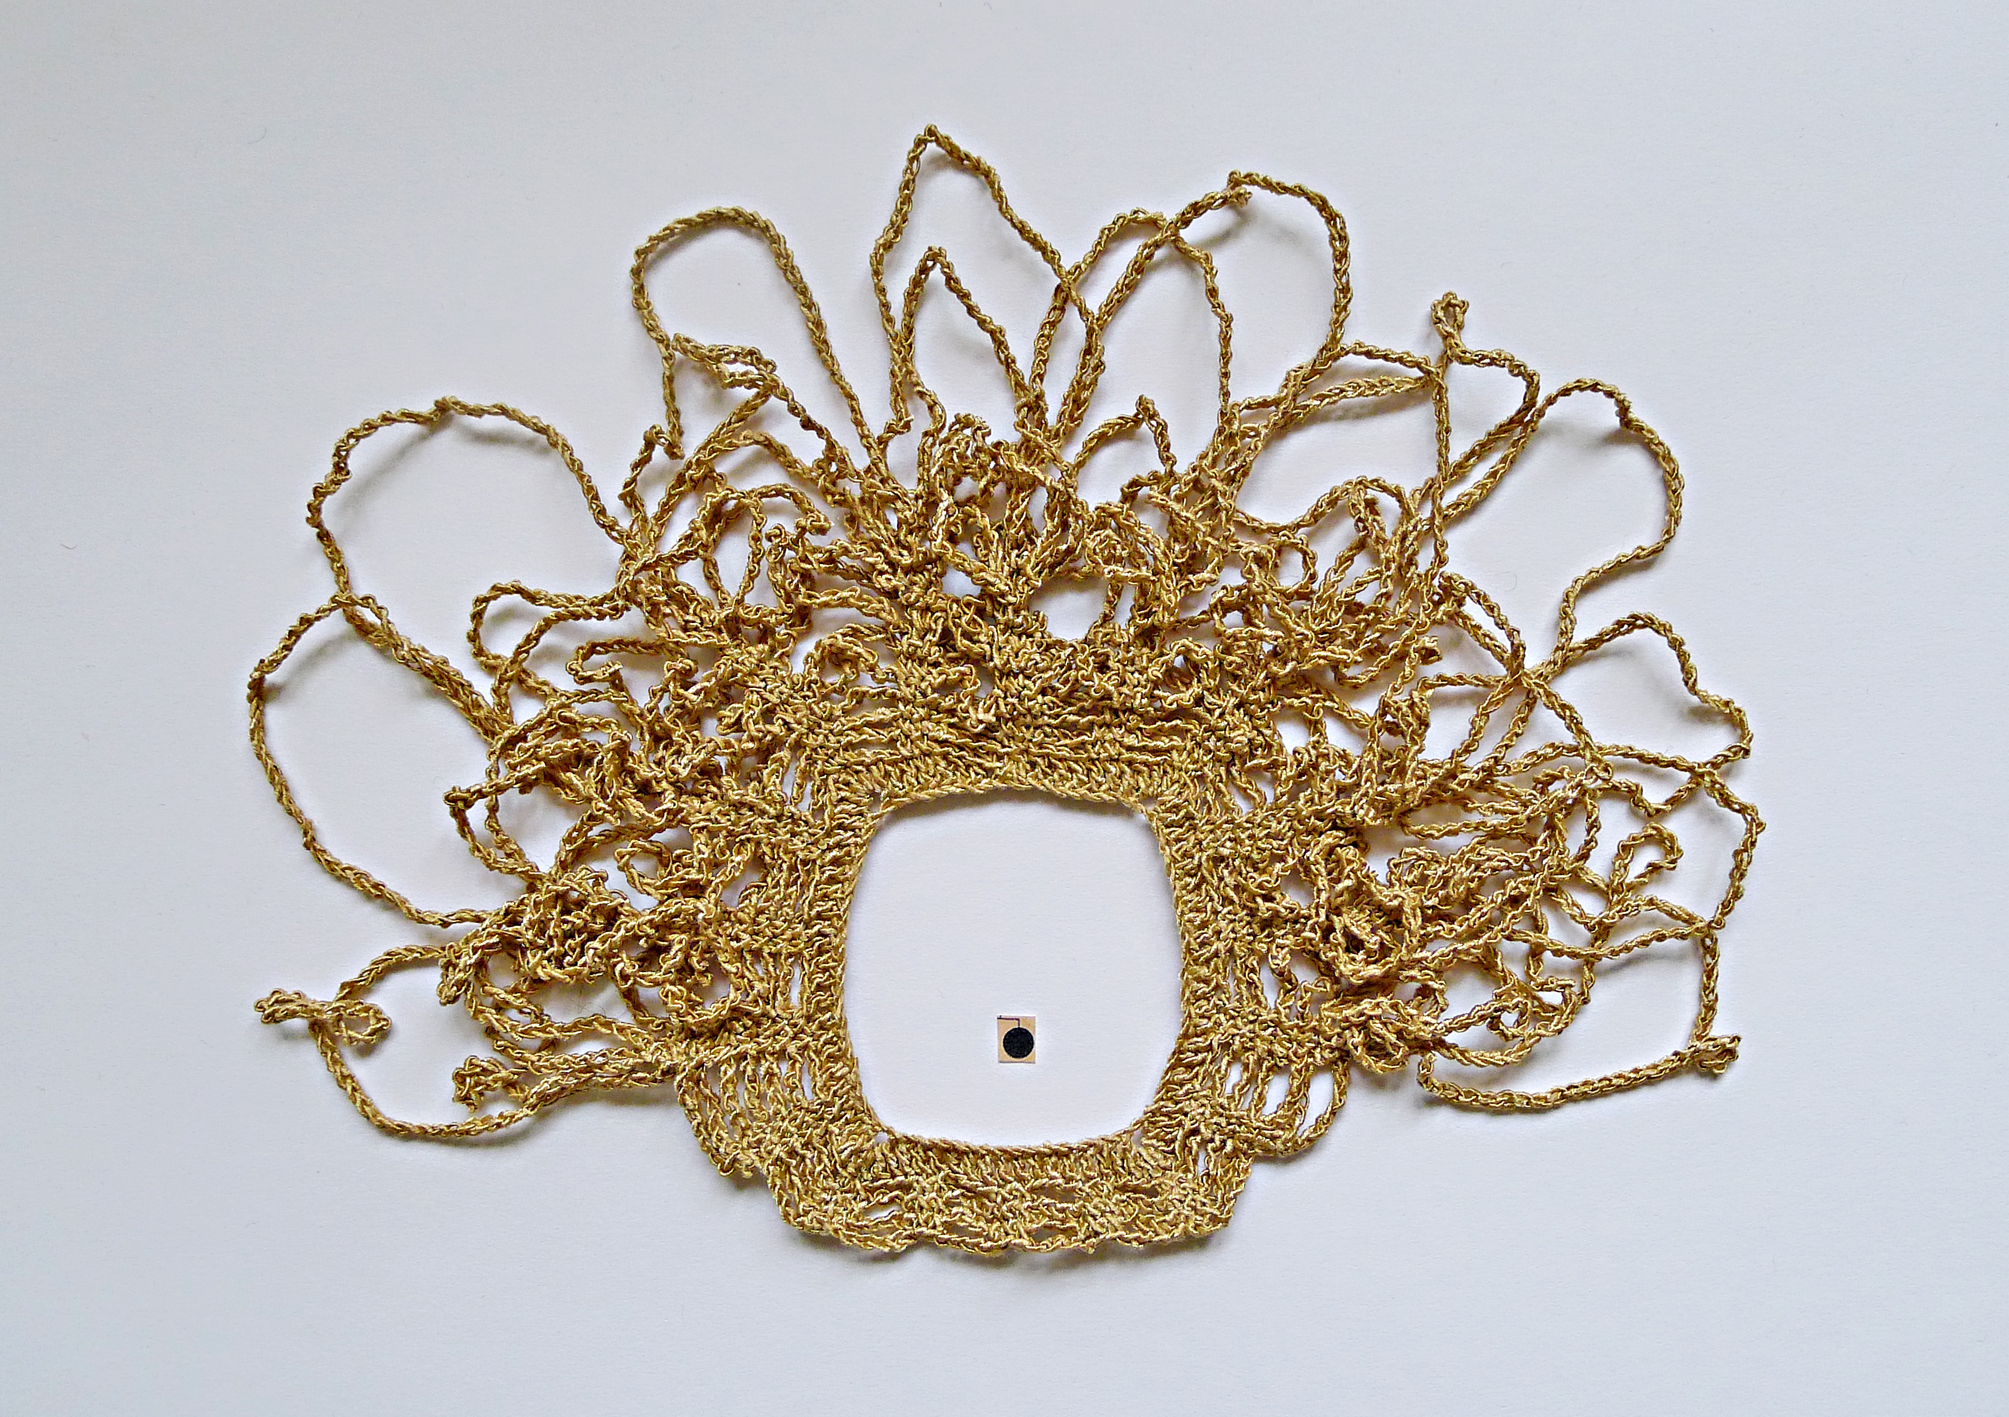 A small crochet work, of a shiny ochre hue, is laid out on a piece of white paper.